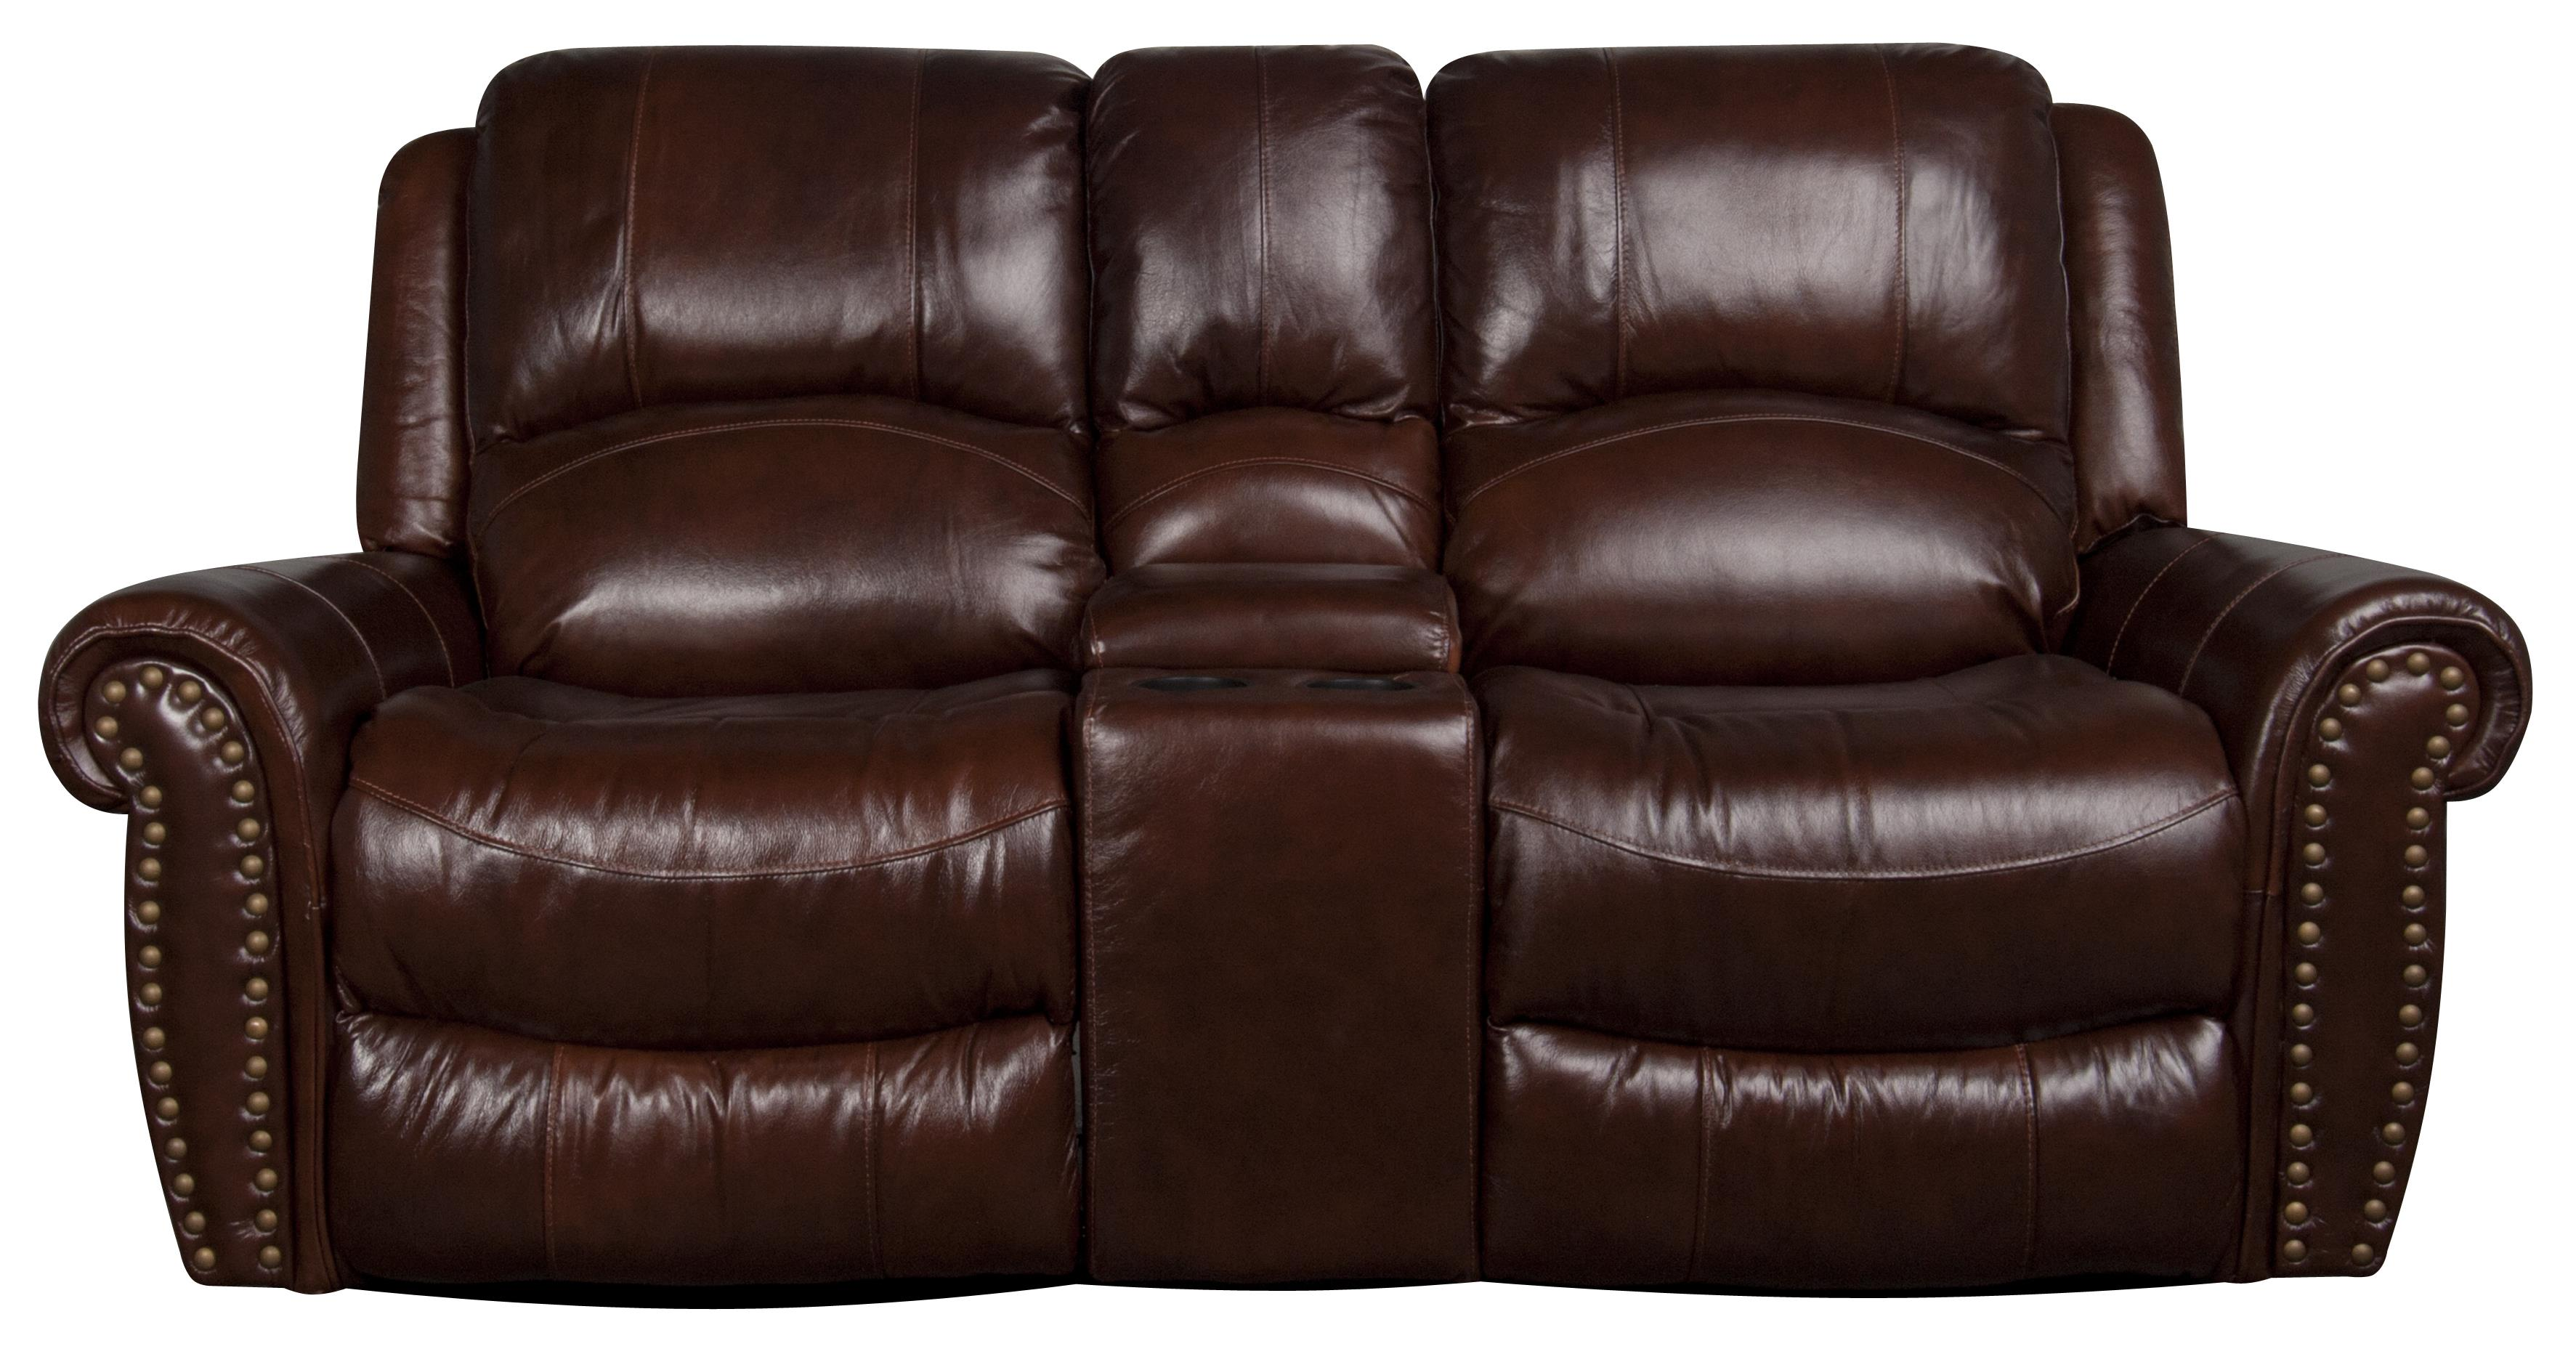 Morris Home Furnishings Fleming Fleming Leather-Match* Reclining Loveseat - Item Number: 134277065